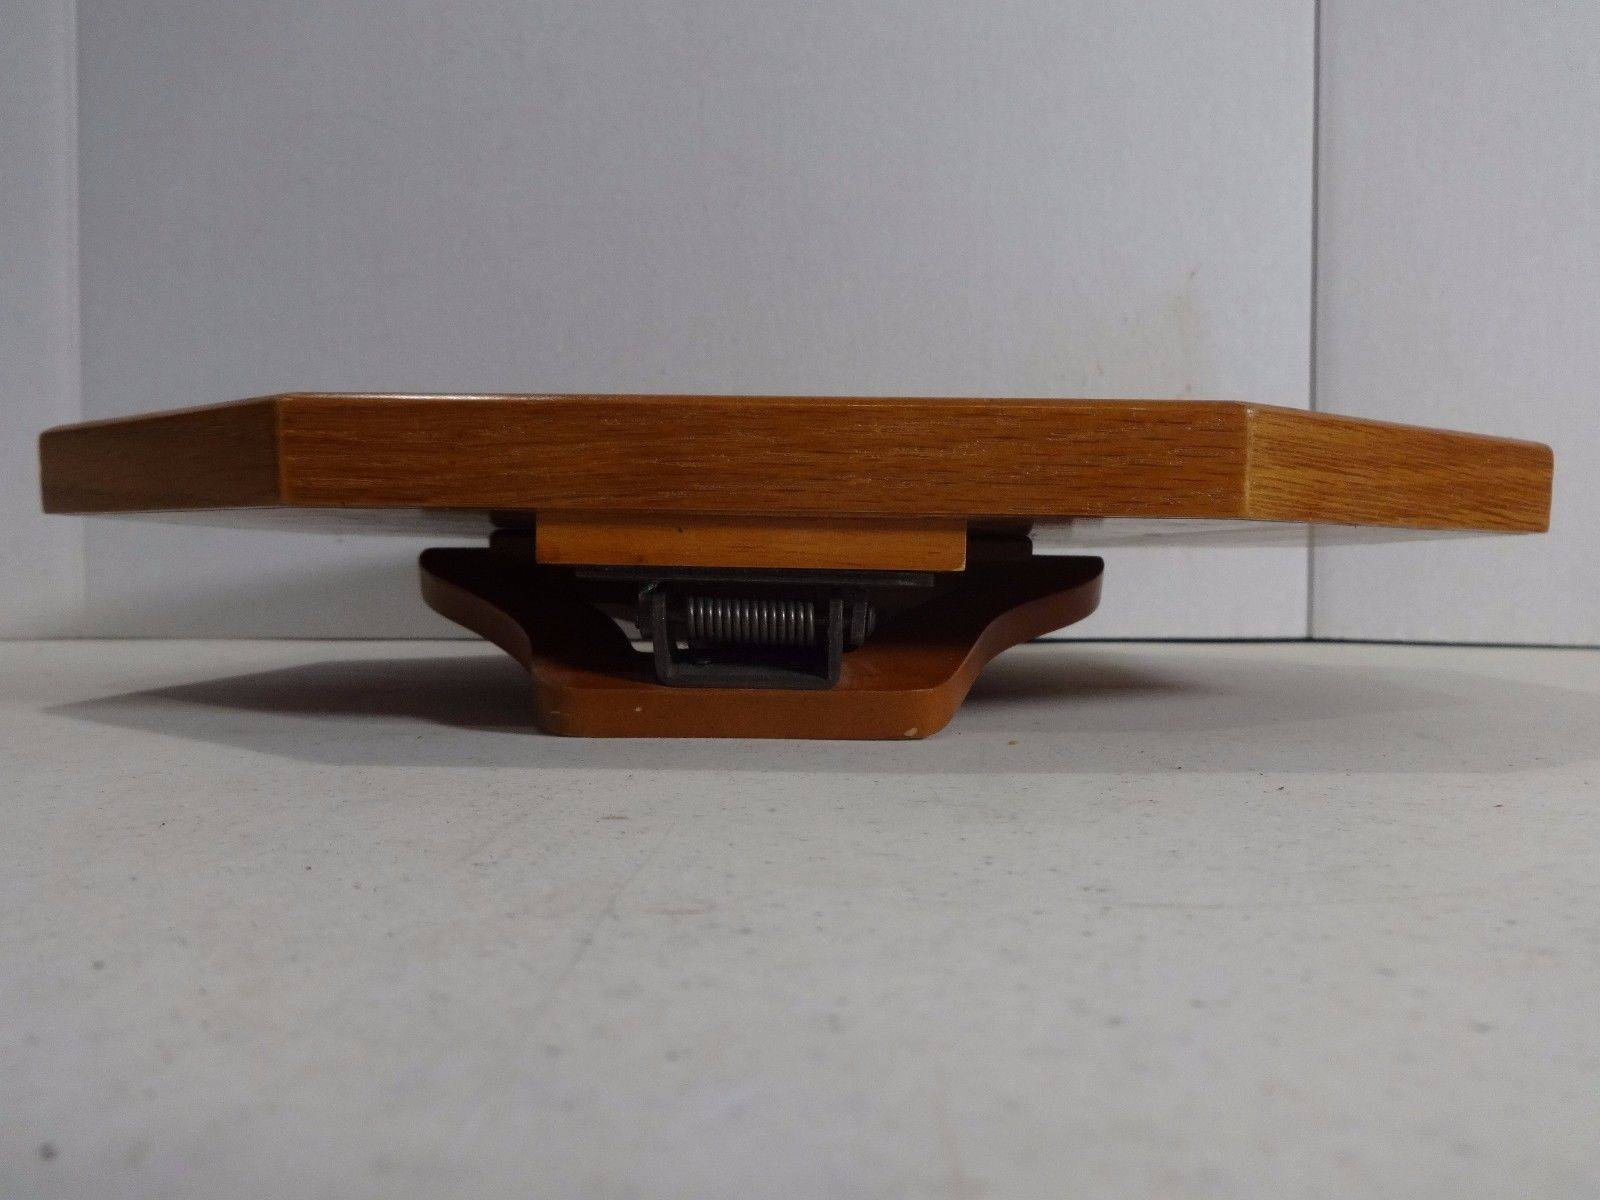 Recliner Armrest Wooden Honey Clip On Snack Tray Table Sofa Remote regarding Sofa Snack Tray Table (Image 15 of 30)